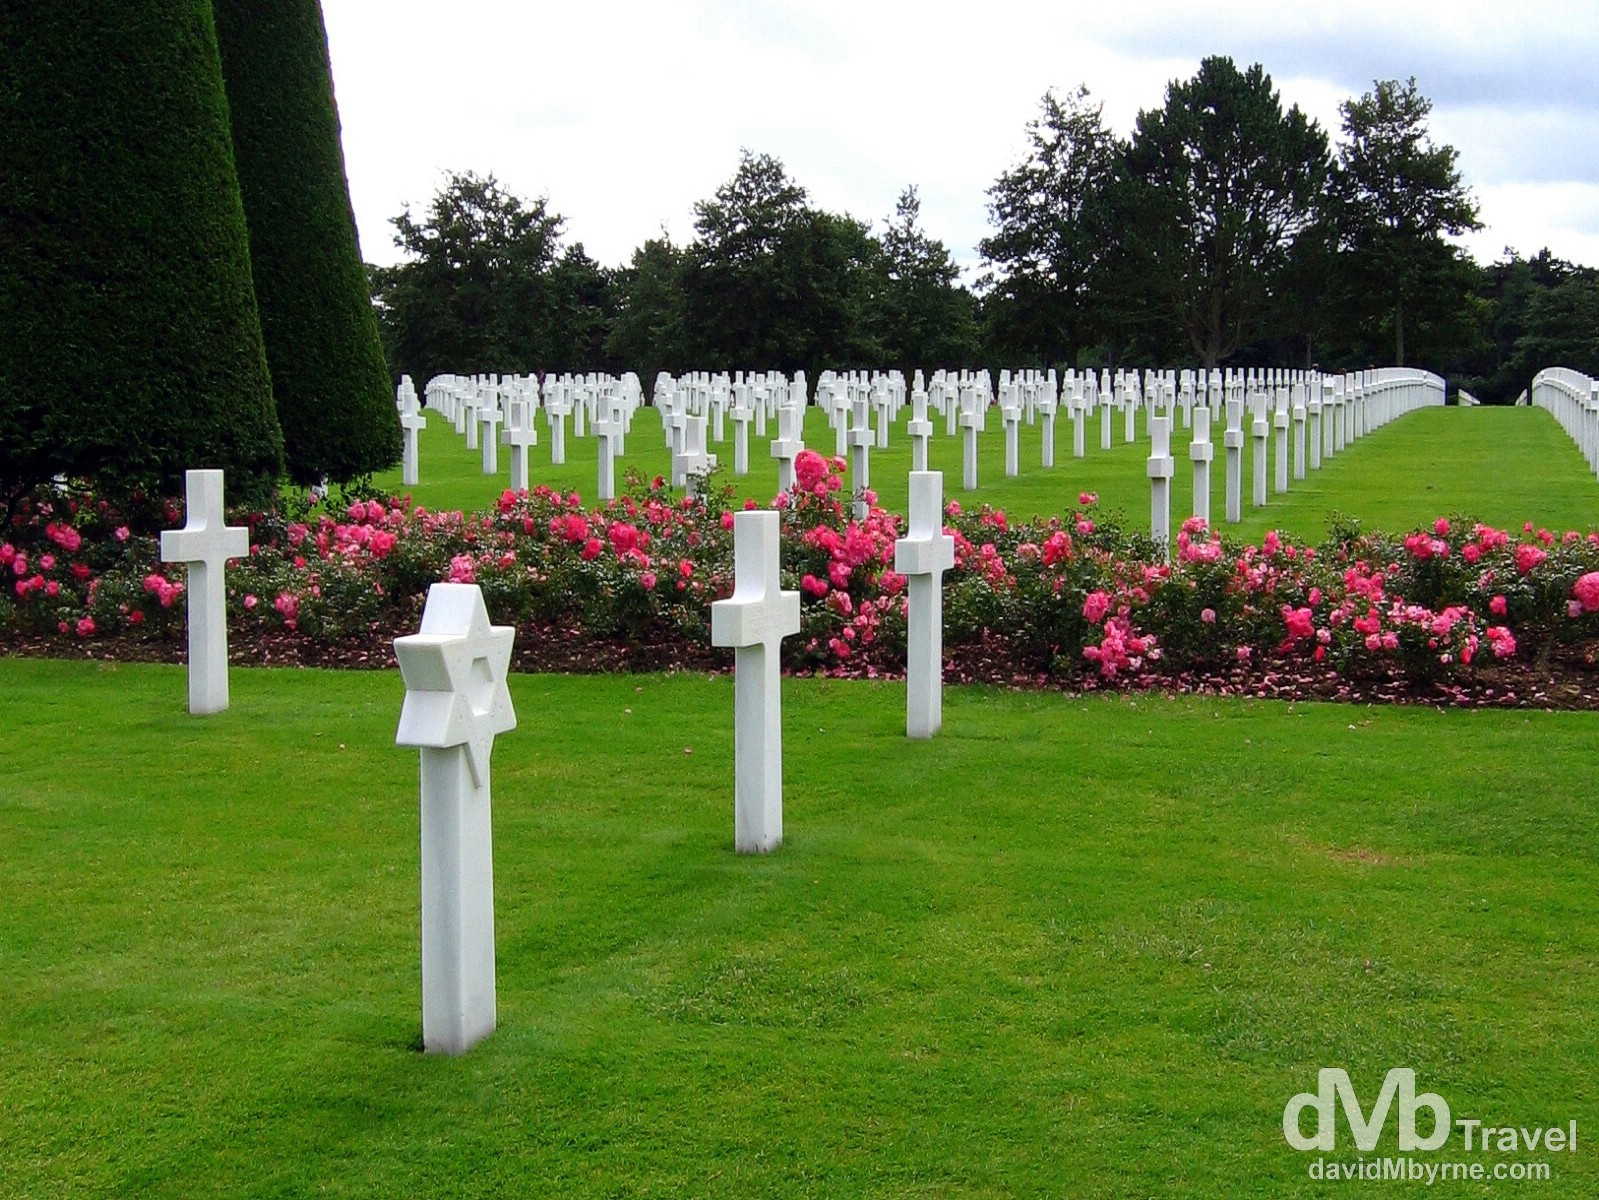 The American War Cemetery in Normandy, France, recognisable from the opening scenes of the 1998 WWII movie 'Saving Private Ryan', overlooks Omaha beach, the D-Day beach stormed by the Americans and the beach that saw the most intense fighting and accounted for most of the D-Day causalities. This sombre place is the final resting spot for just under 10,000 soldiers who died in the overall battle of Normandy. They are buried under solid white marble crosses in orderly rows set among the most impeccably manicured lawns I've ever seen. The site is 720 acres in size, land that was, at the end of the war, given to the Americans by the French government in perpetuity. American War Cemetery, Colleville sur mer, Normandy, France. August 16th 2007.